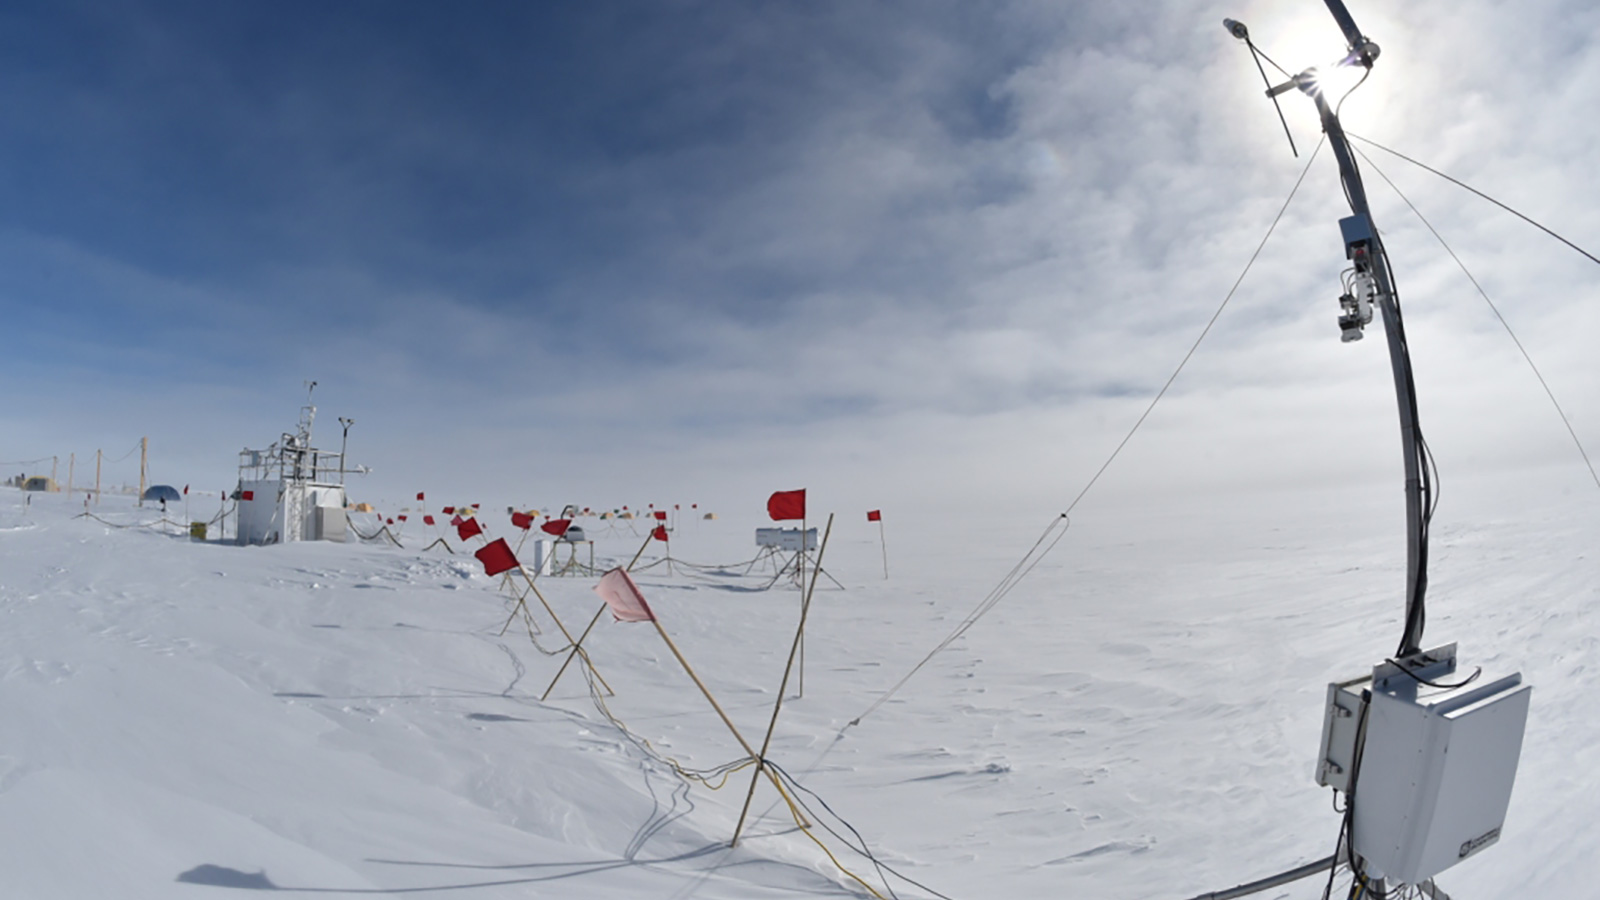 Beginning in late November 2015, a set of ARM equipment was deployed to the West Antarctic Ice Sheet, including basic radiometric, surface energy balance and upper air equipment directly to make the first well-calibrated climatological suite of measurements seen in this extremely remote, but globally critical, region in more than 40 years. (Image by U.S. Department of Energy Atmospheric Radiation Measurement [ARM] Research Facility.)